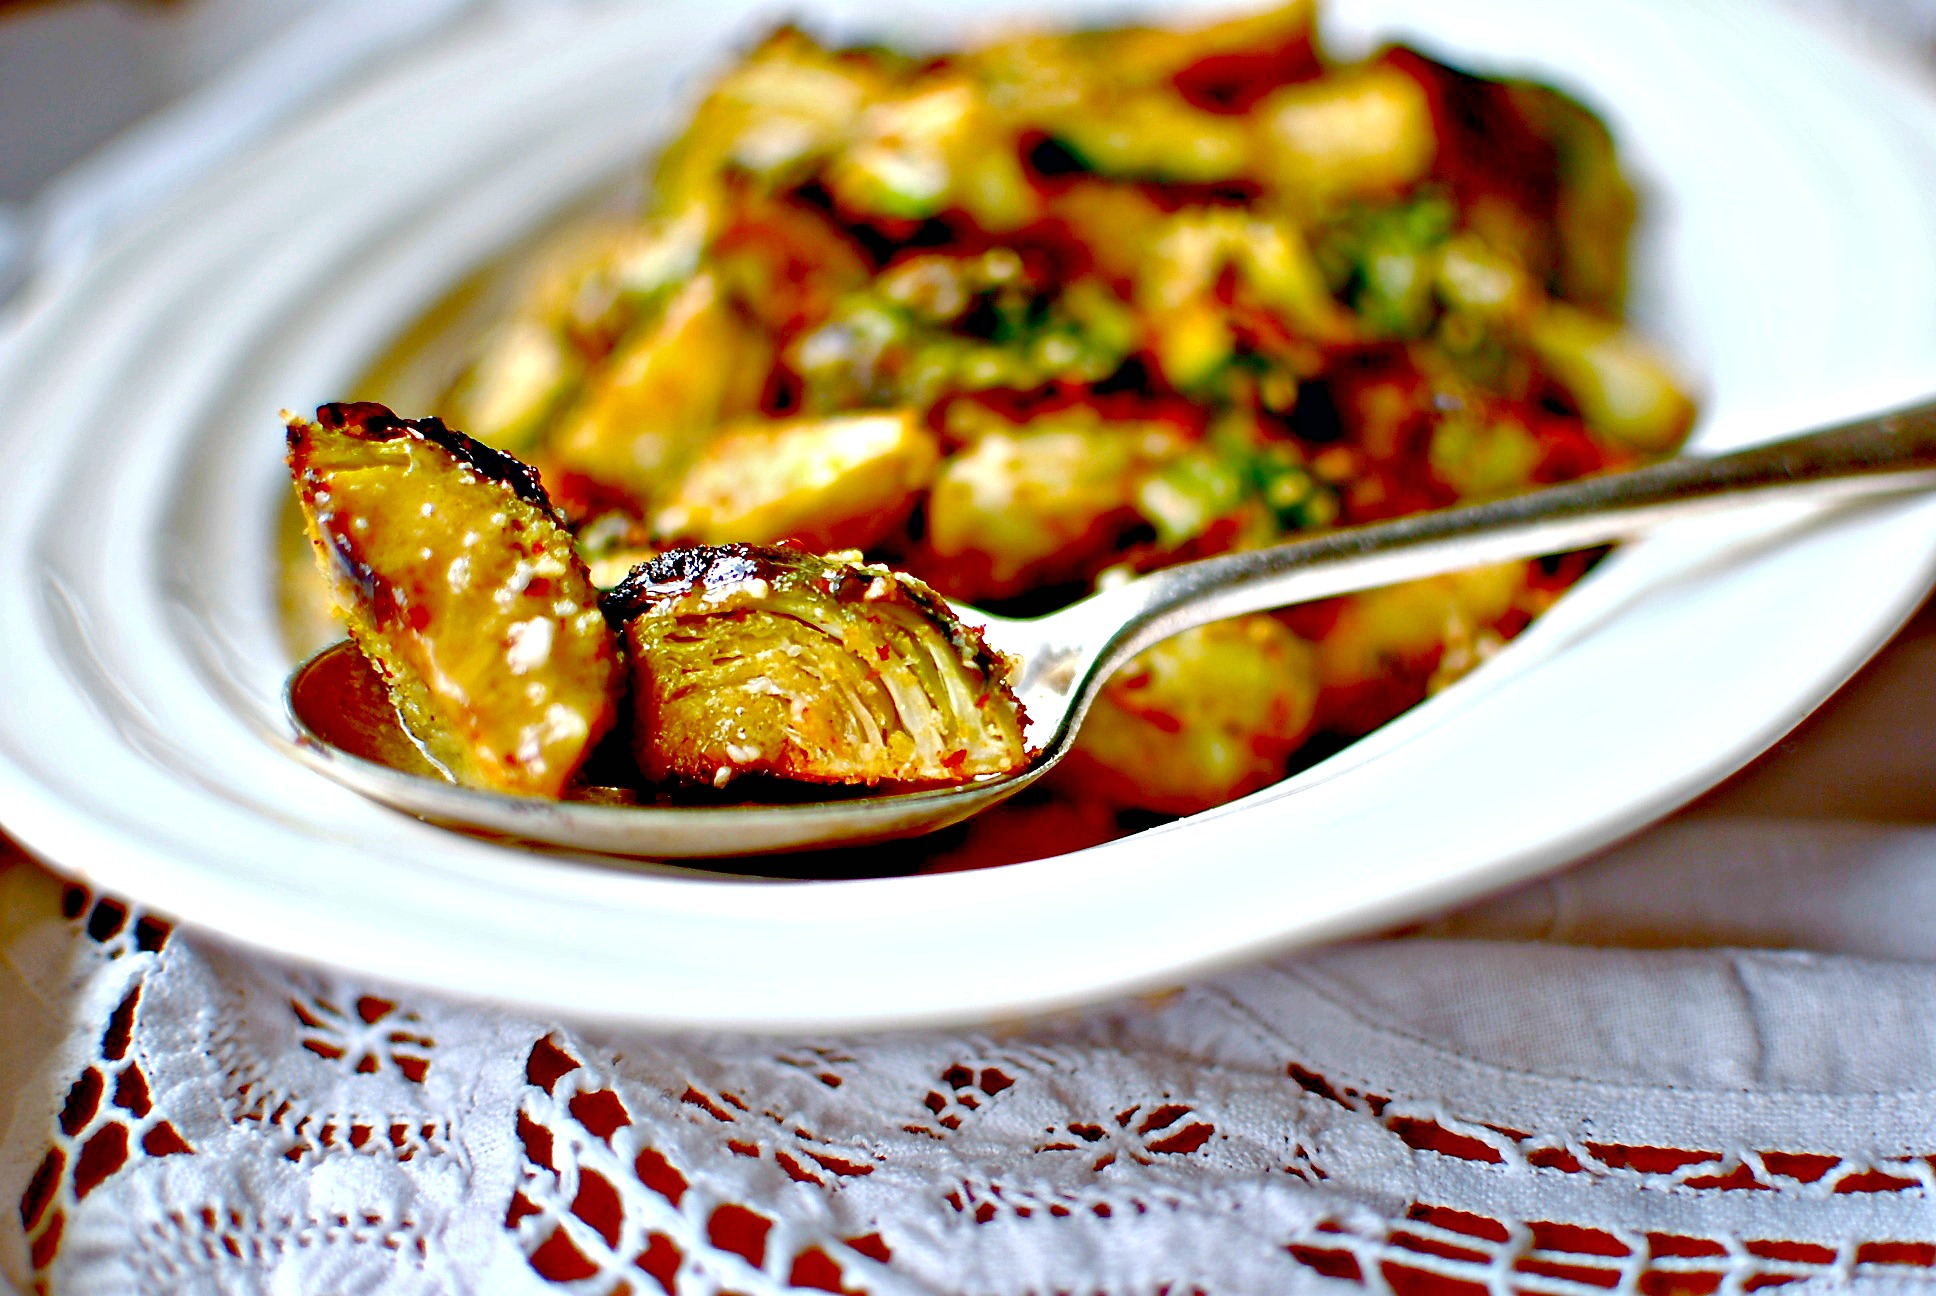 ... brussels sprouts roasted brussels sprouts apples maple dijon roasted